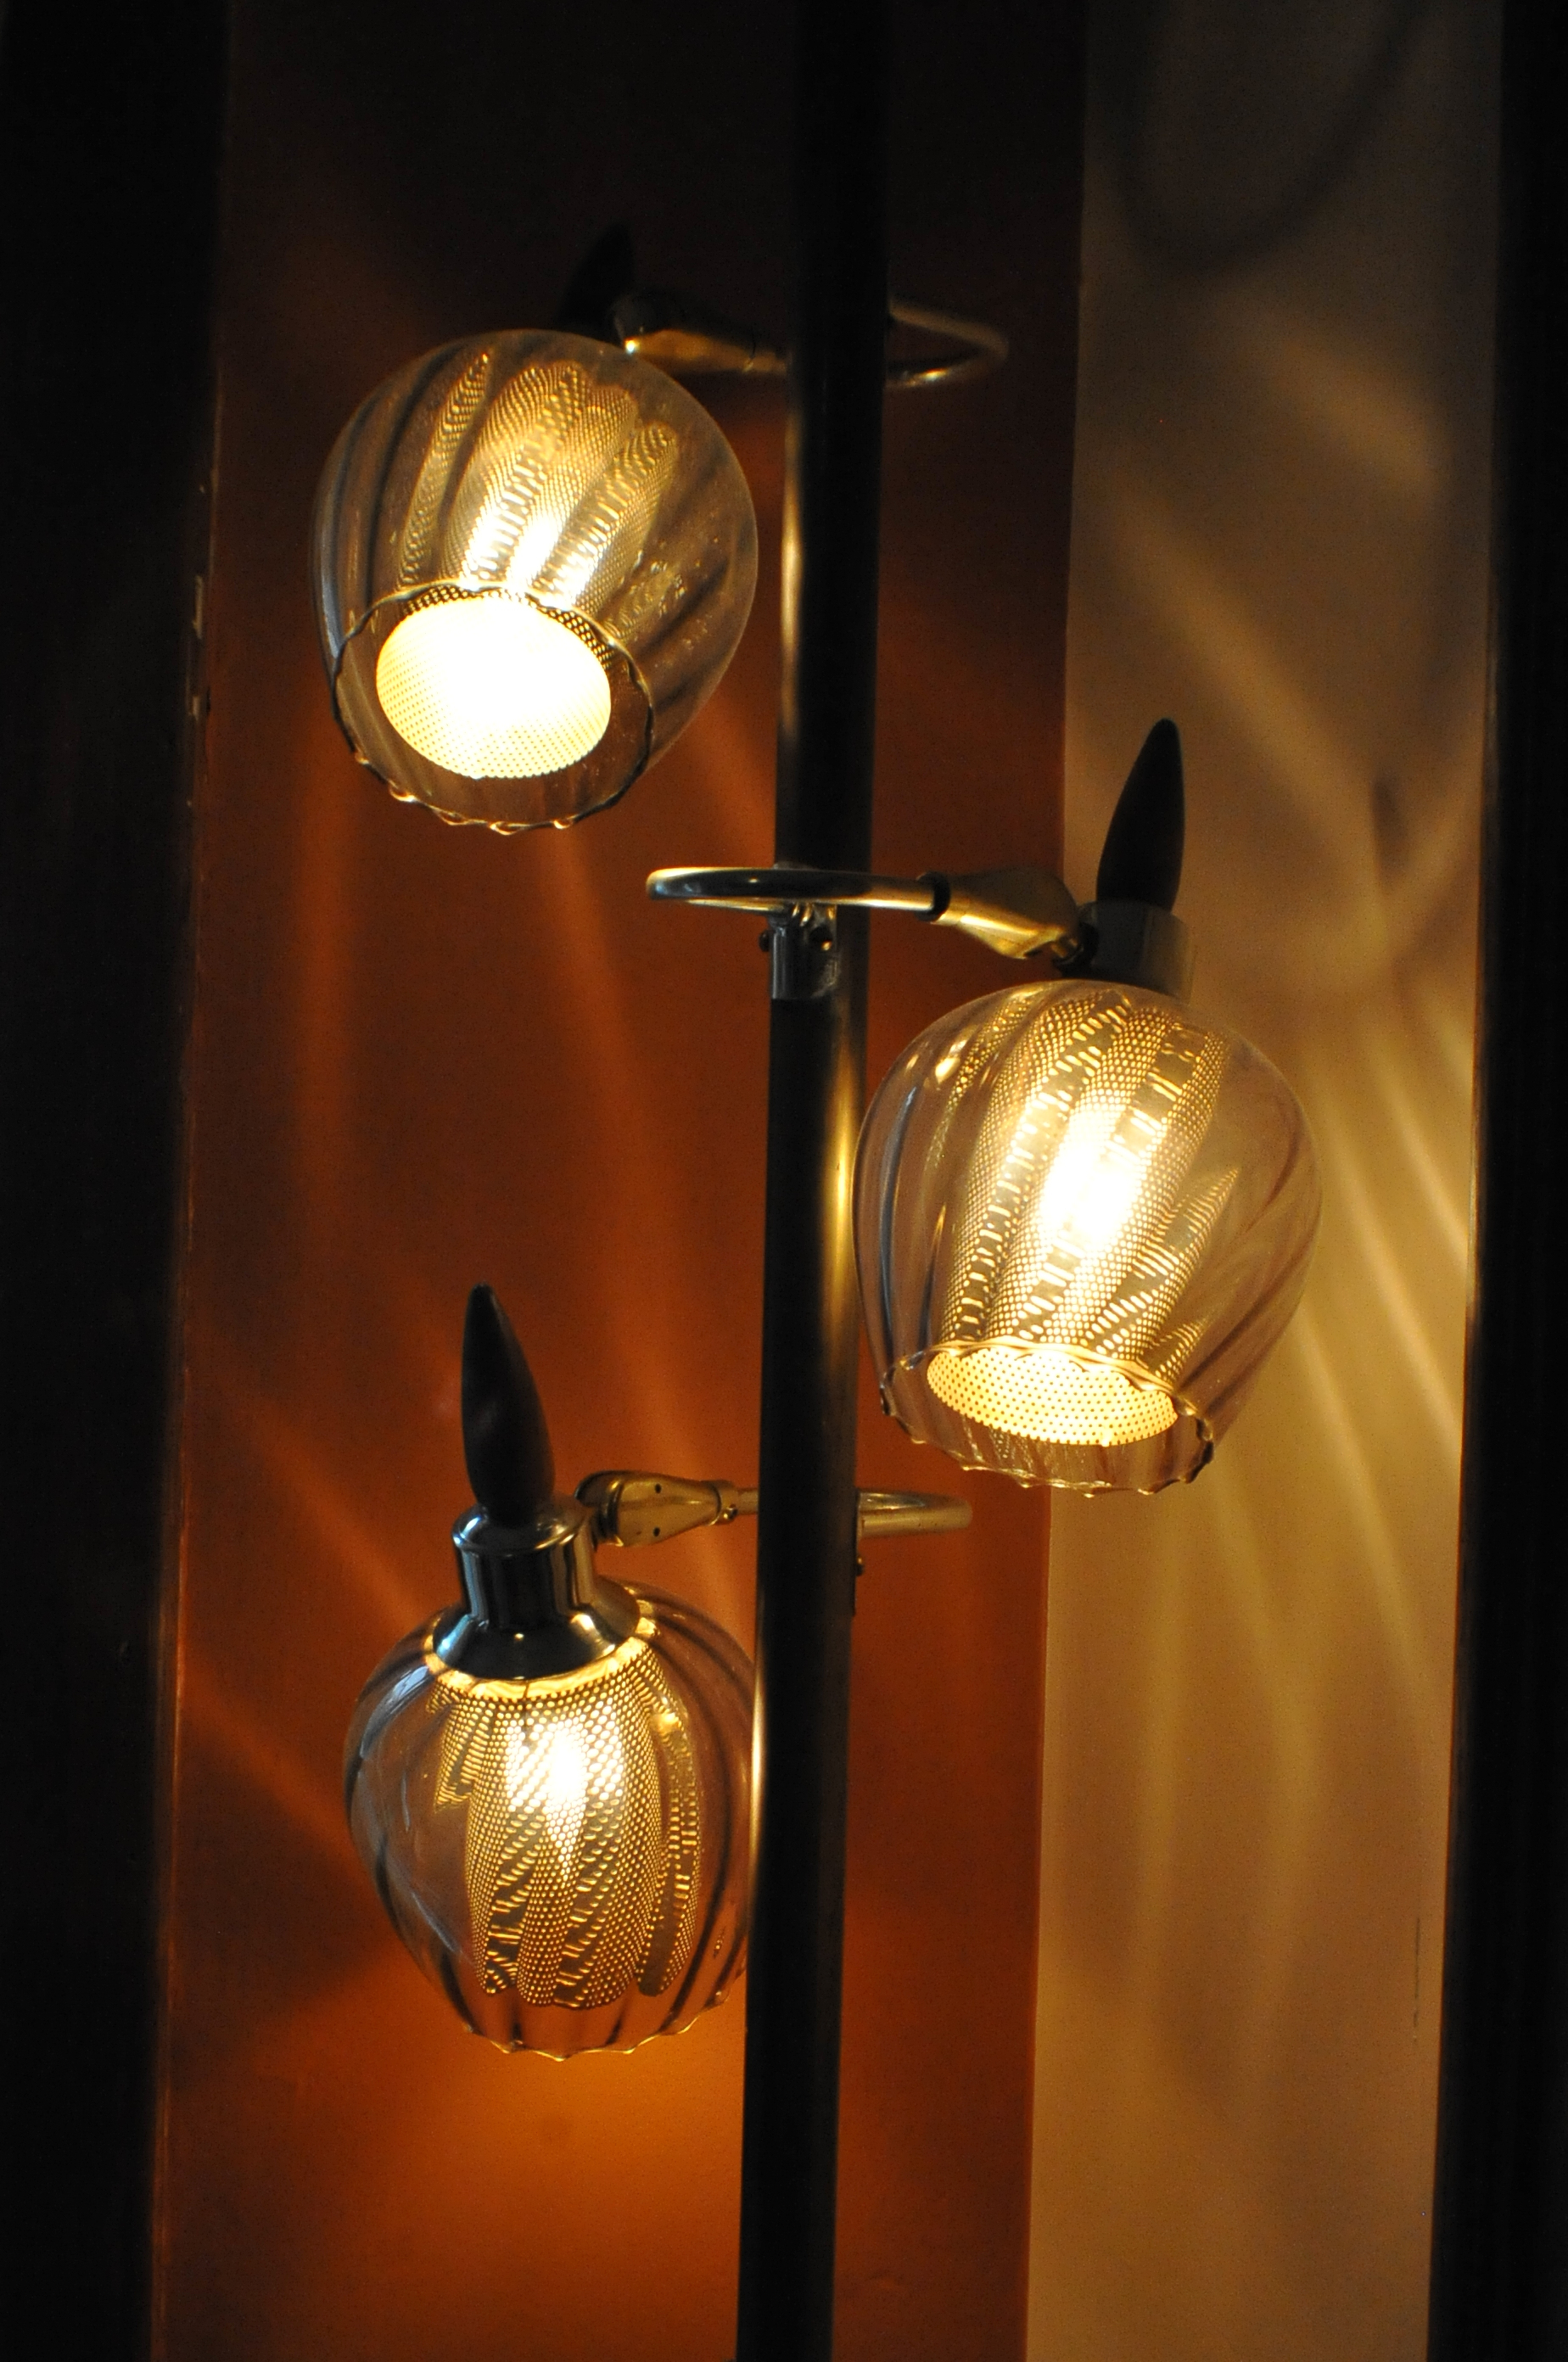 Floor ceiling pole light antique designer art deco lamp sale aloadofball Gallery